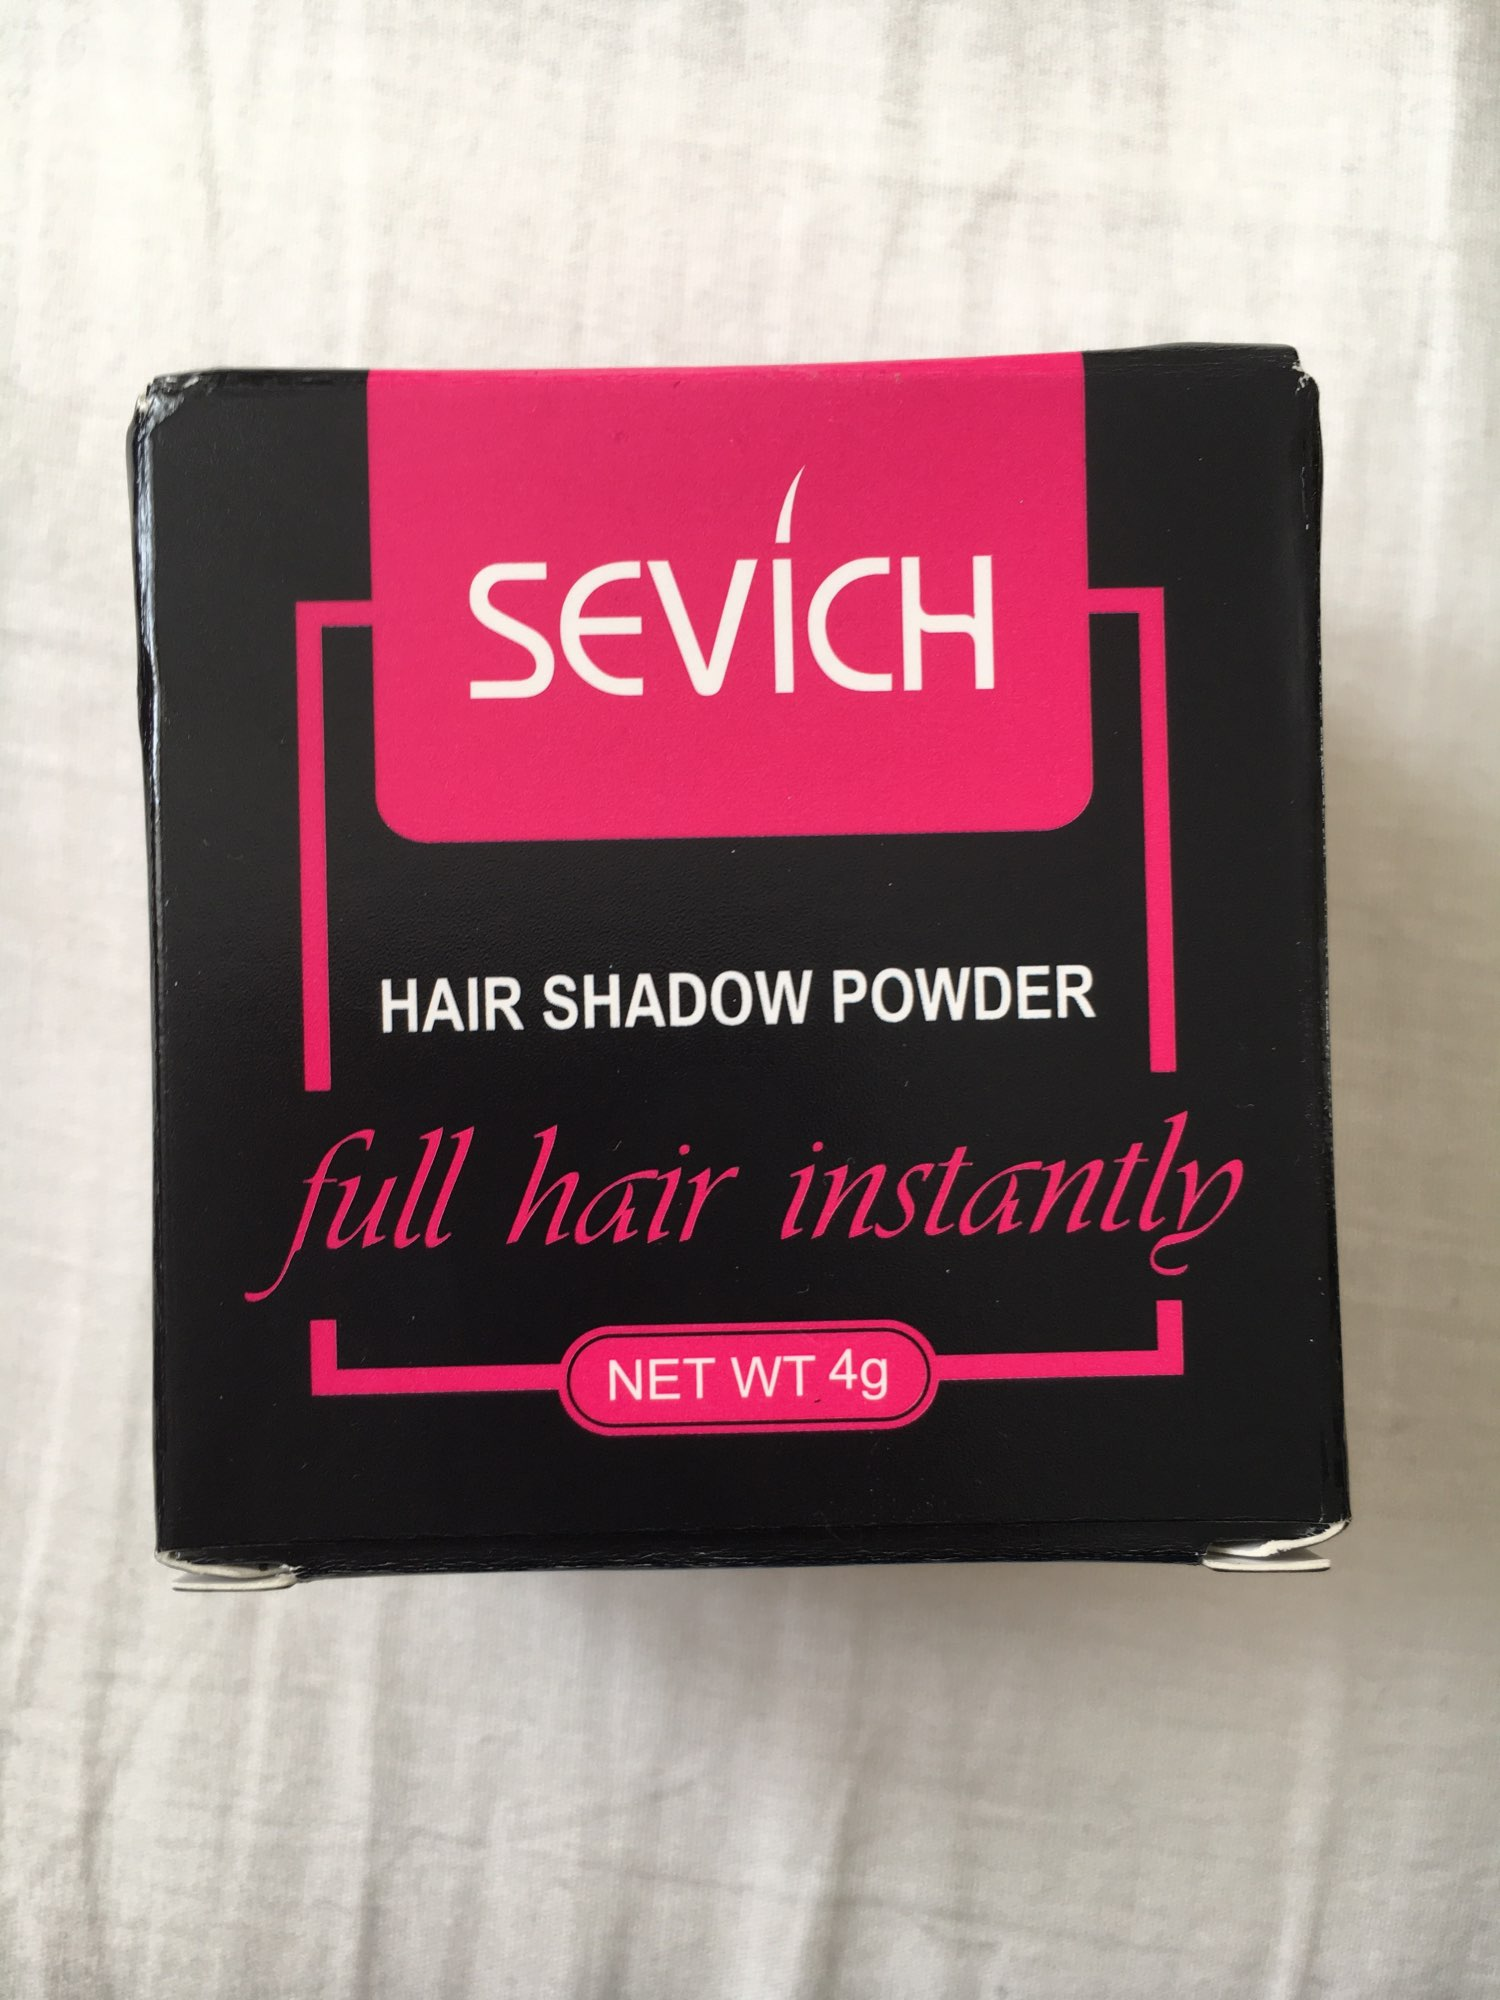 Sevich Hair Fluffy Powder for Instant Black Blonde Root Cover Up - Hair Concealer photo review